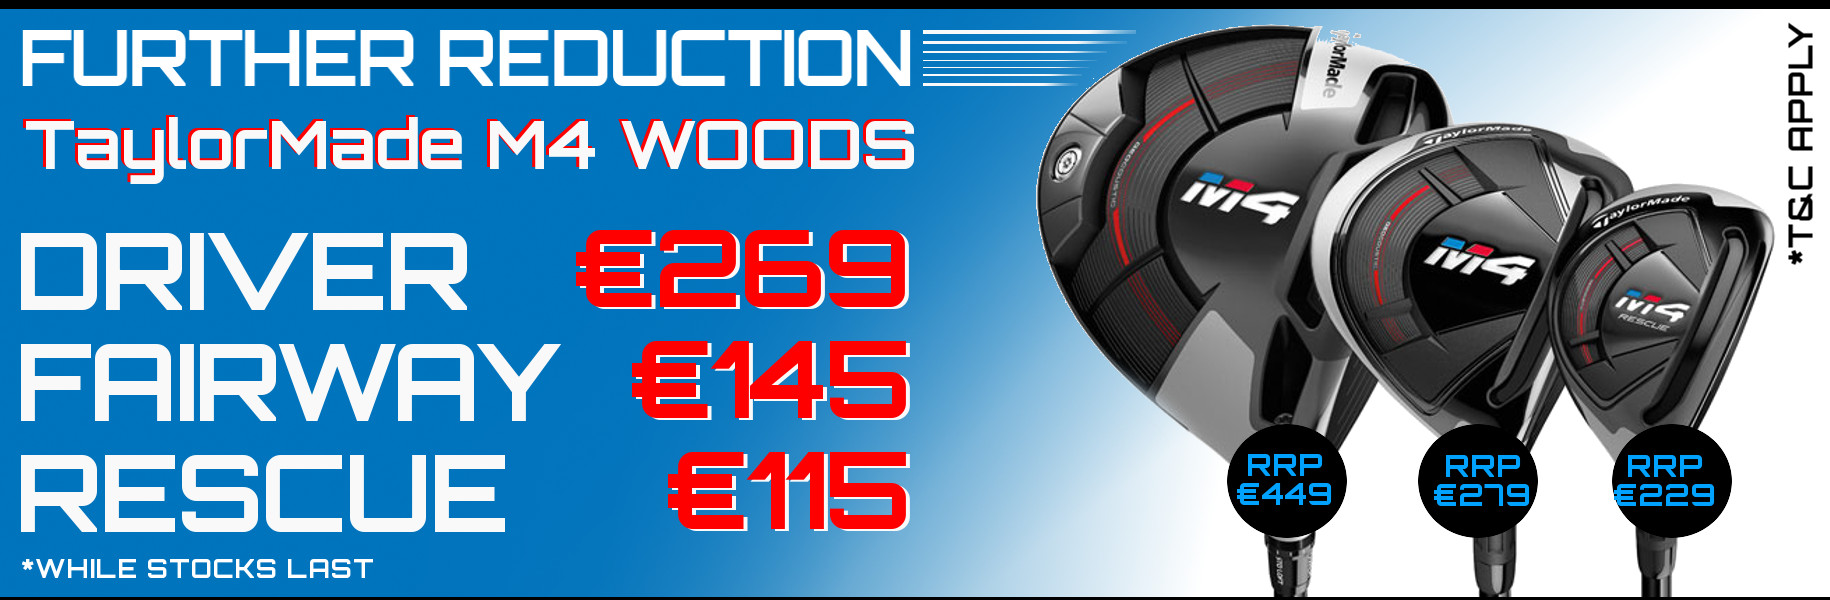 TaylorMade M4 Further price reduction